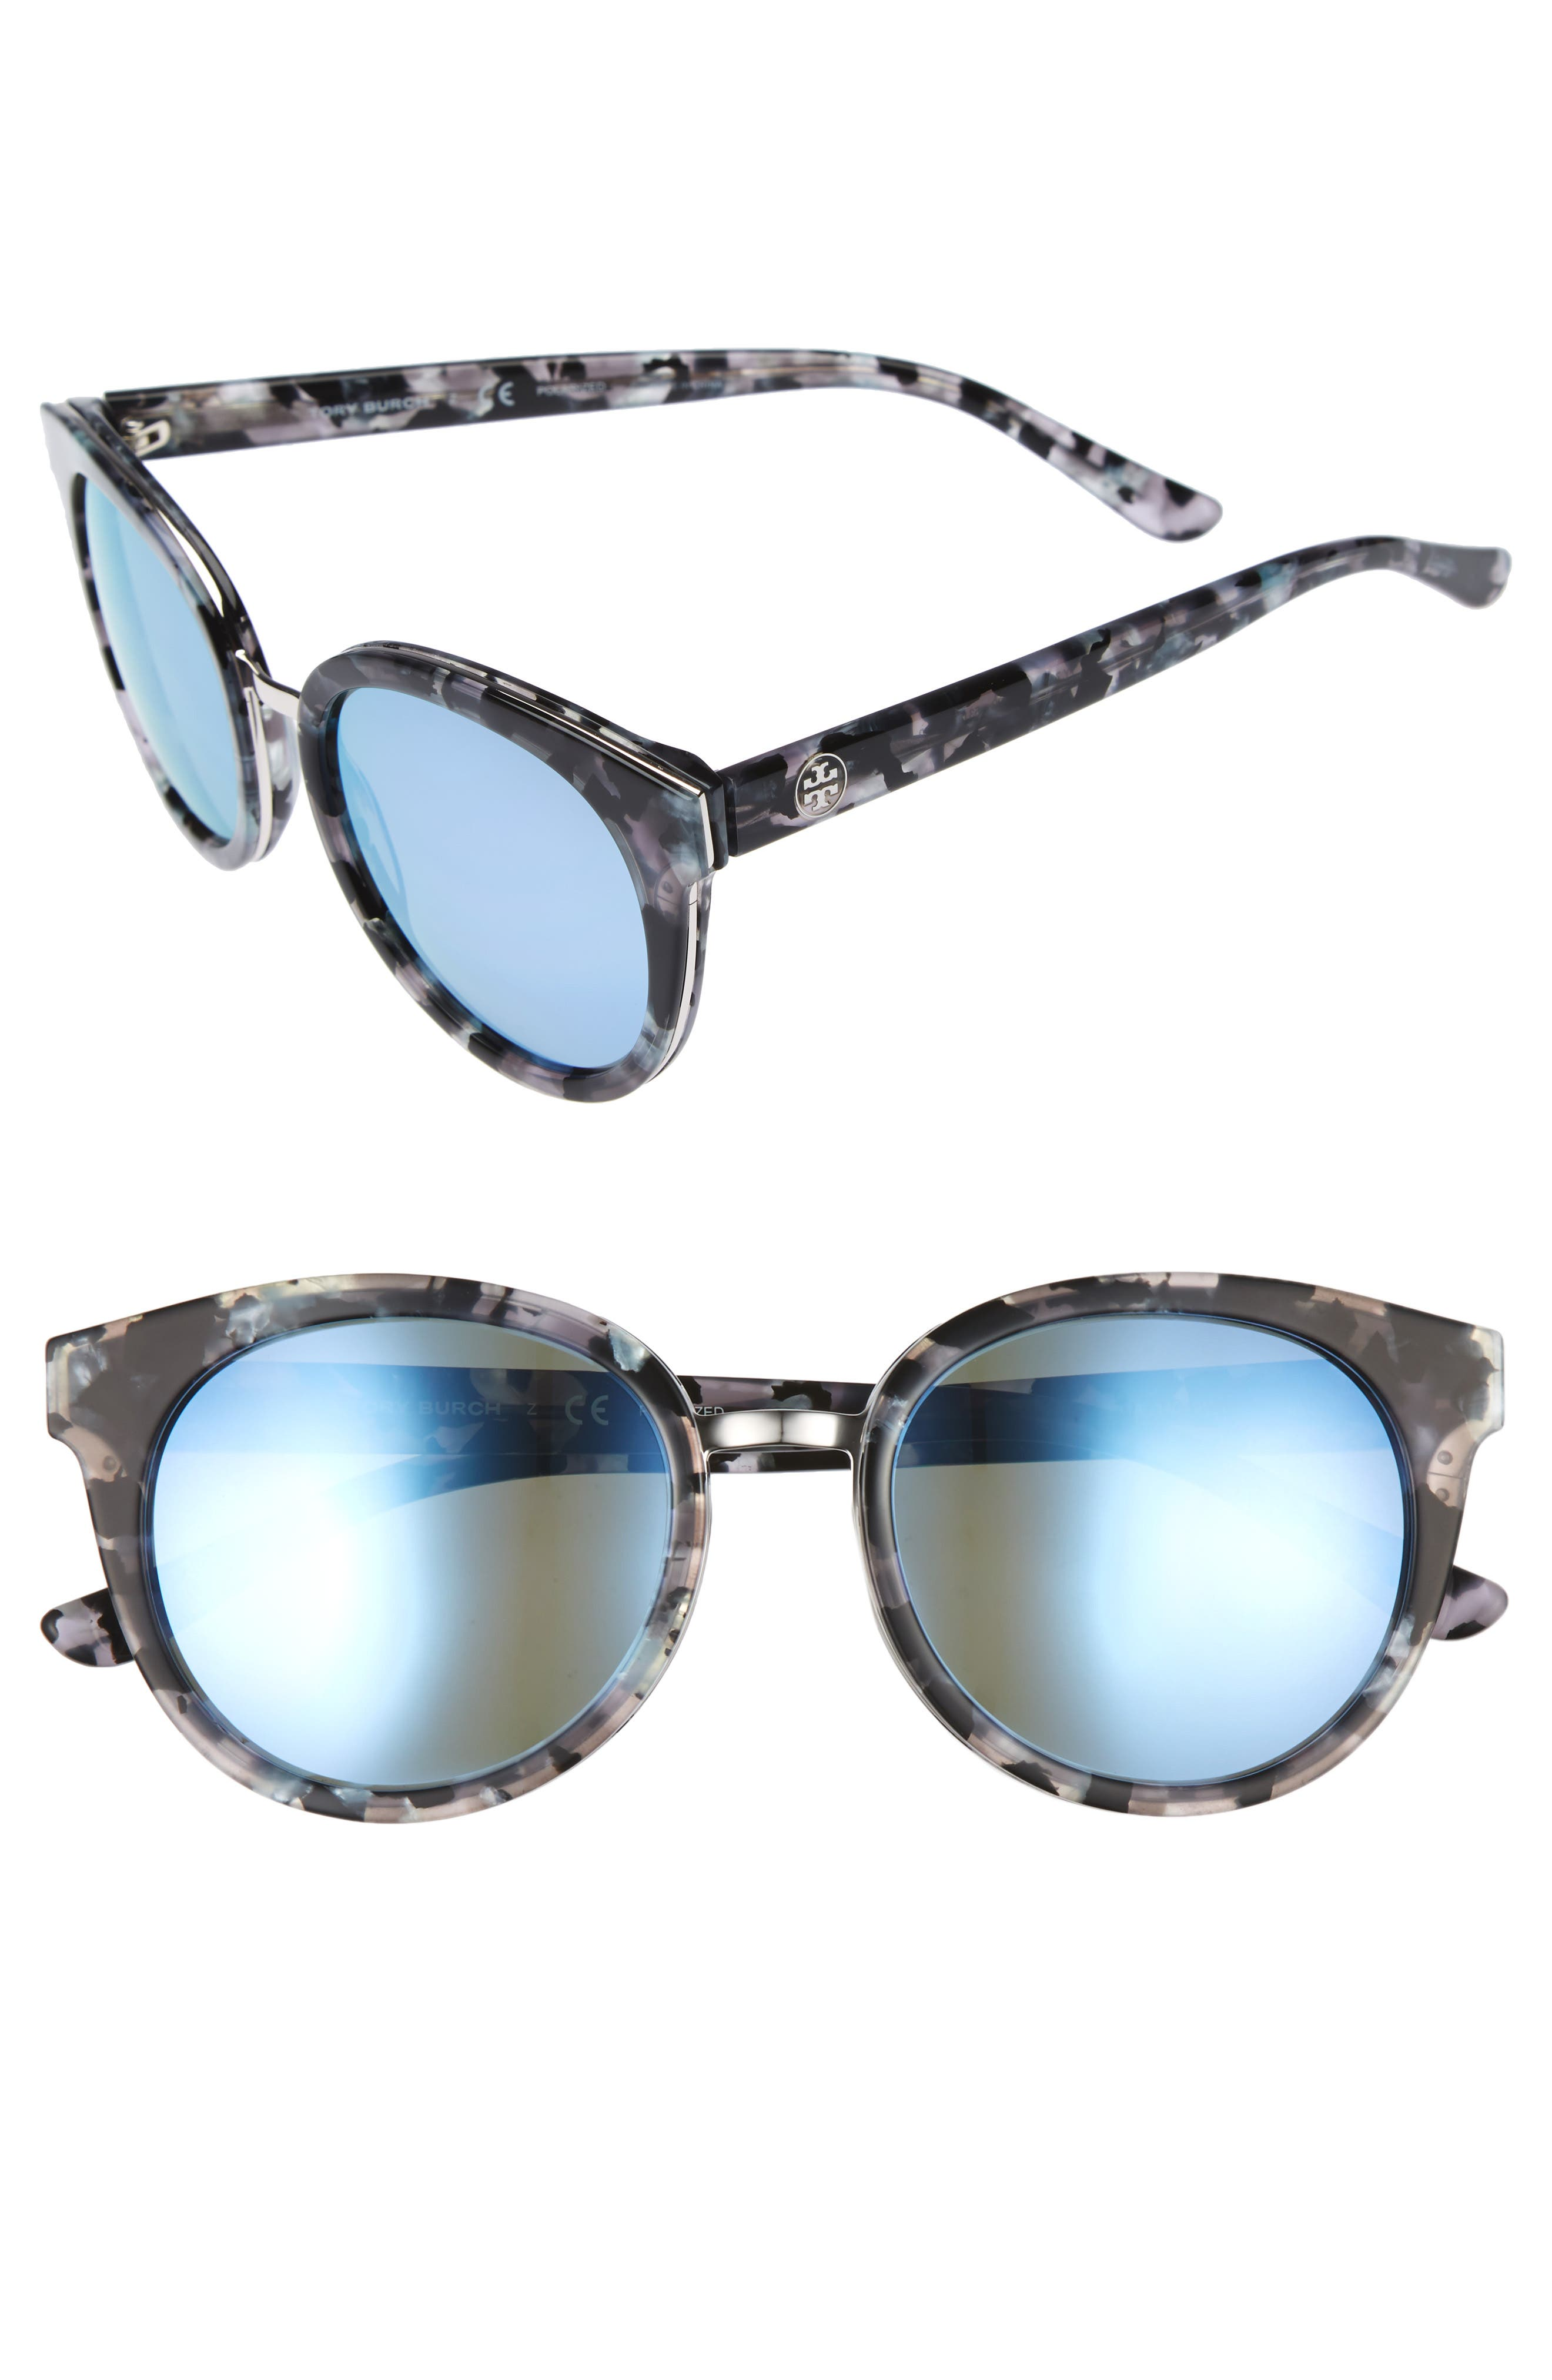 Alternate Image 1 Selected - Tory Burch 53mm Polarized Sunglasses